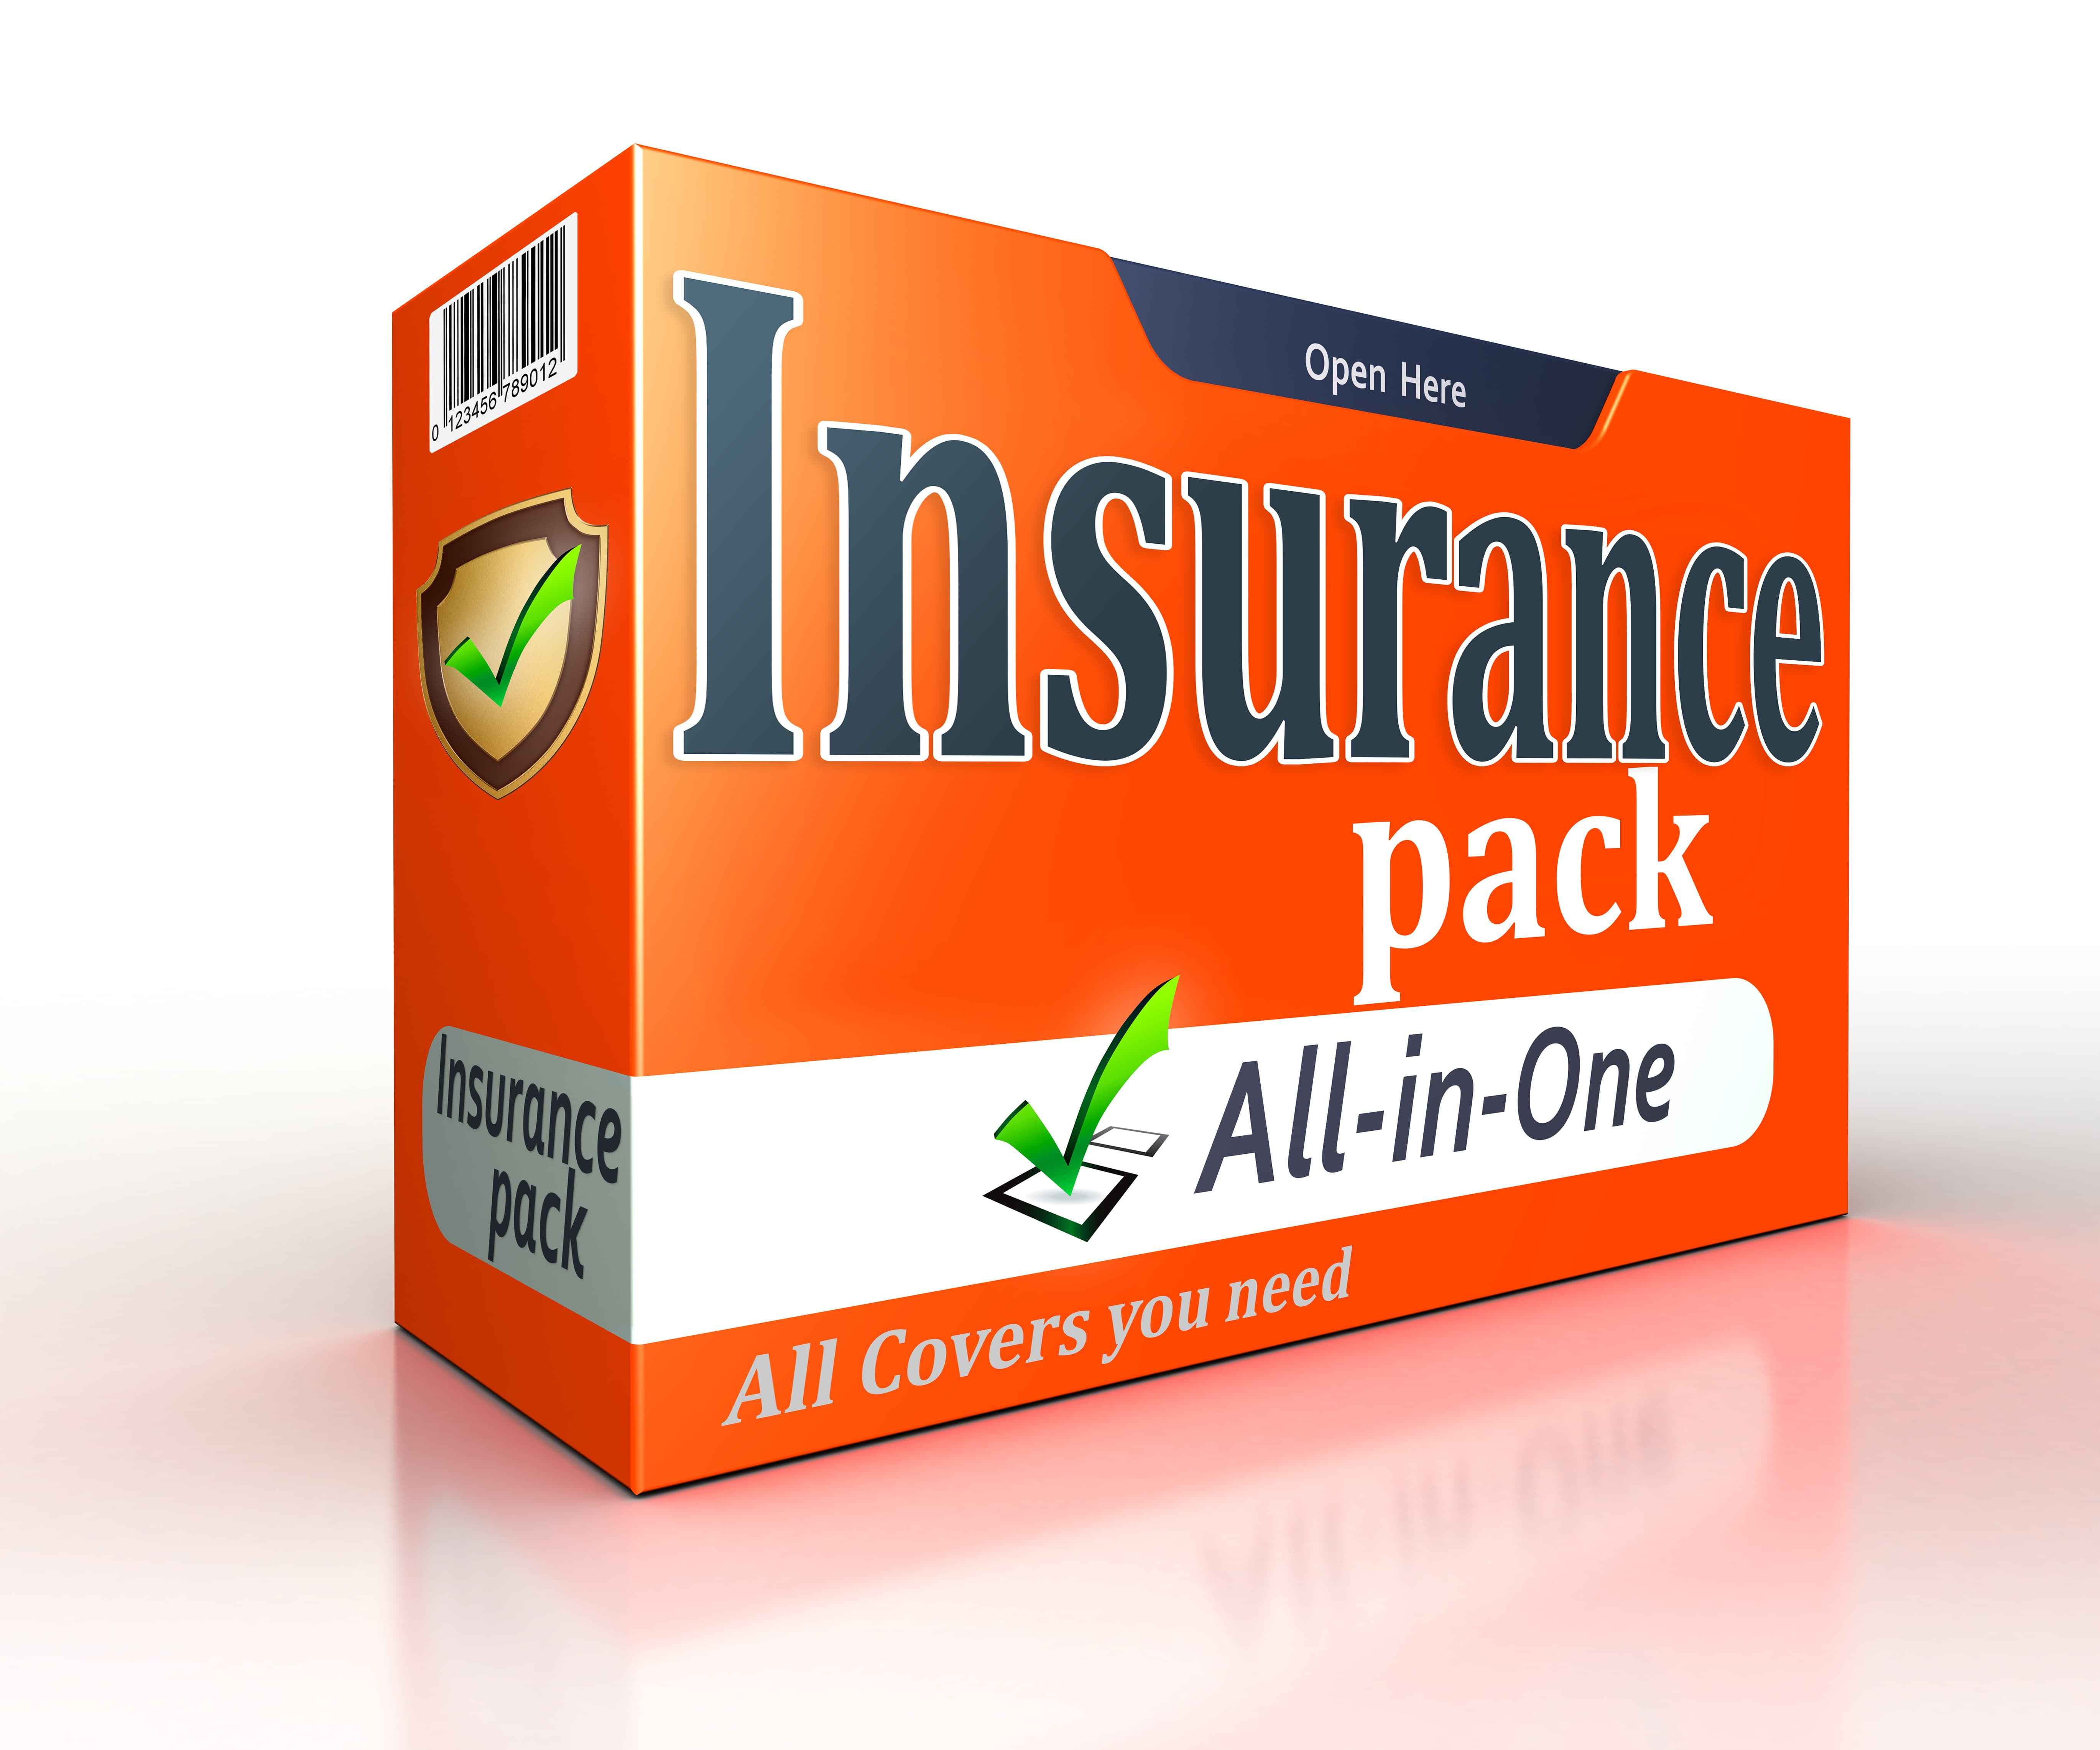 insurance-orange-pack-concept-on-white-background-clipping-path-included